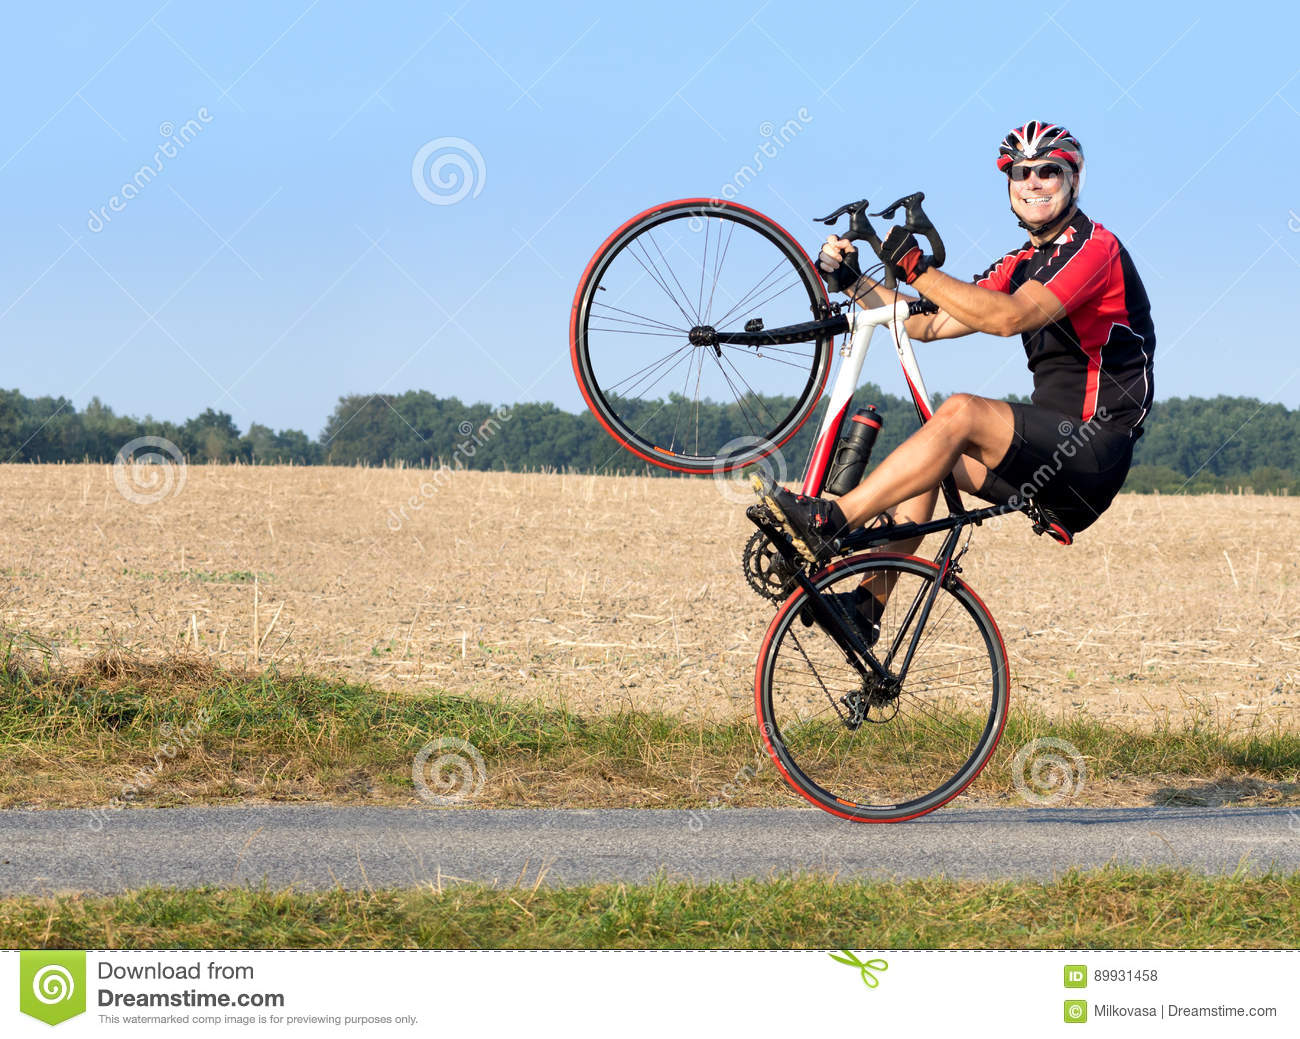 9456a2a8fd5 Cheerful Cyclist Riding On The Rear Wheel. Stock Photo - Image of ...